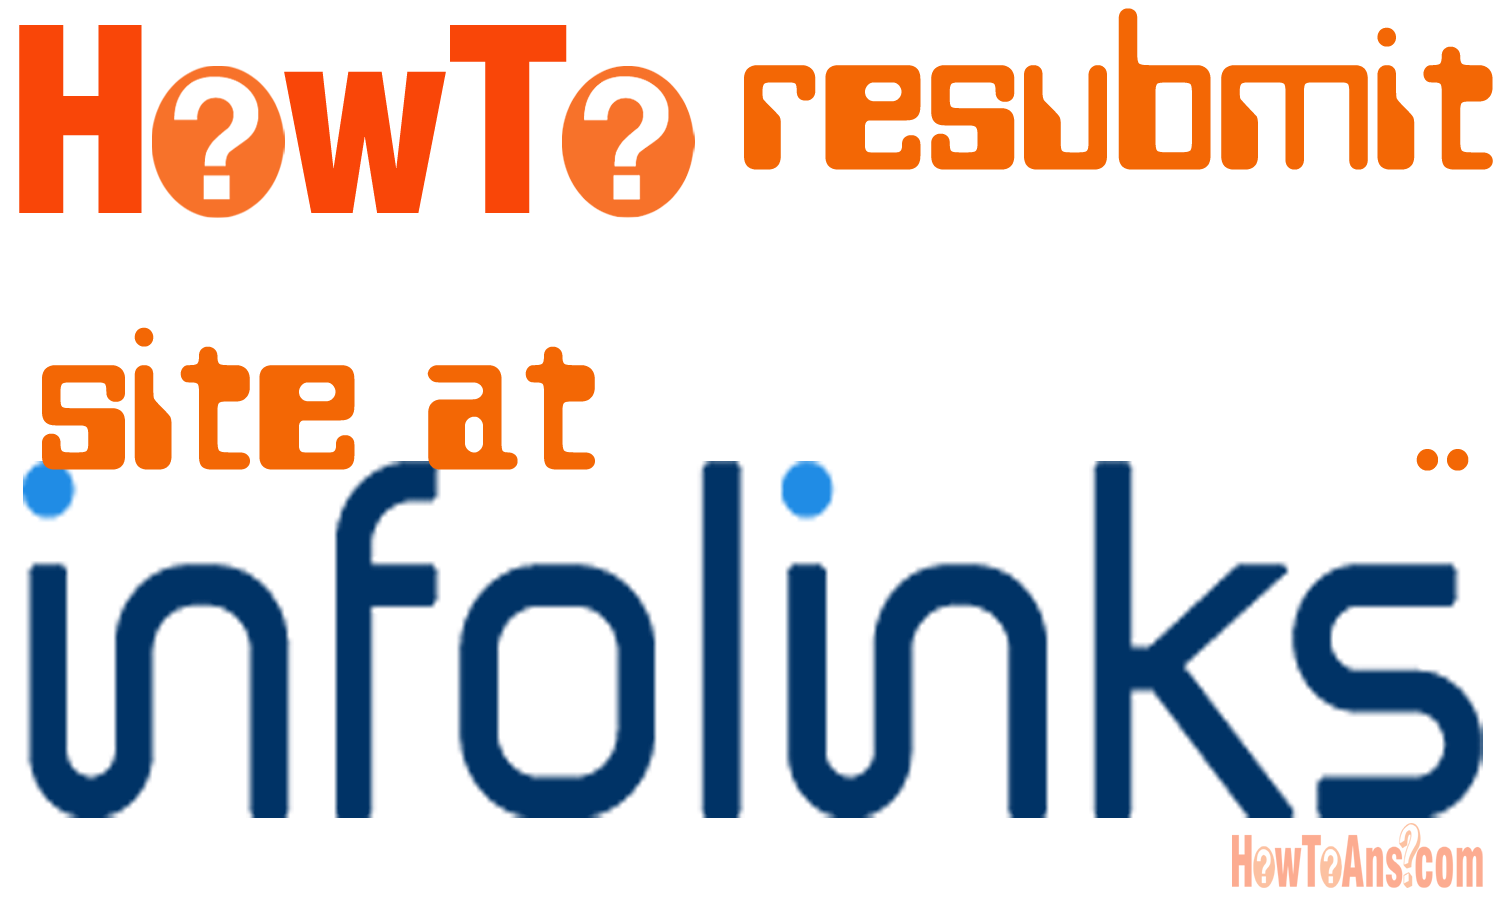 How-to-resubmit-site-at-infolinks-for-approval